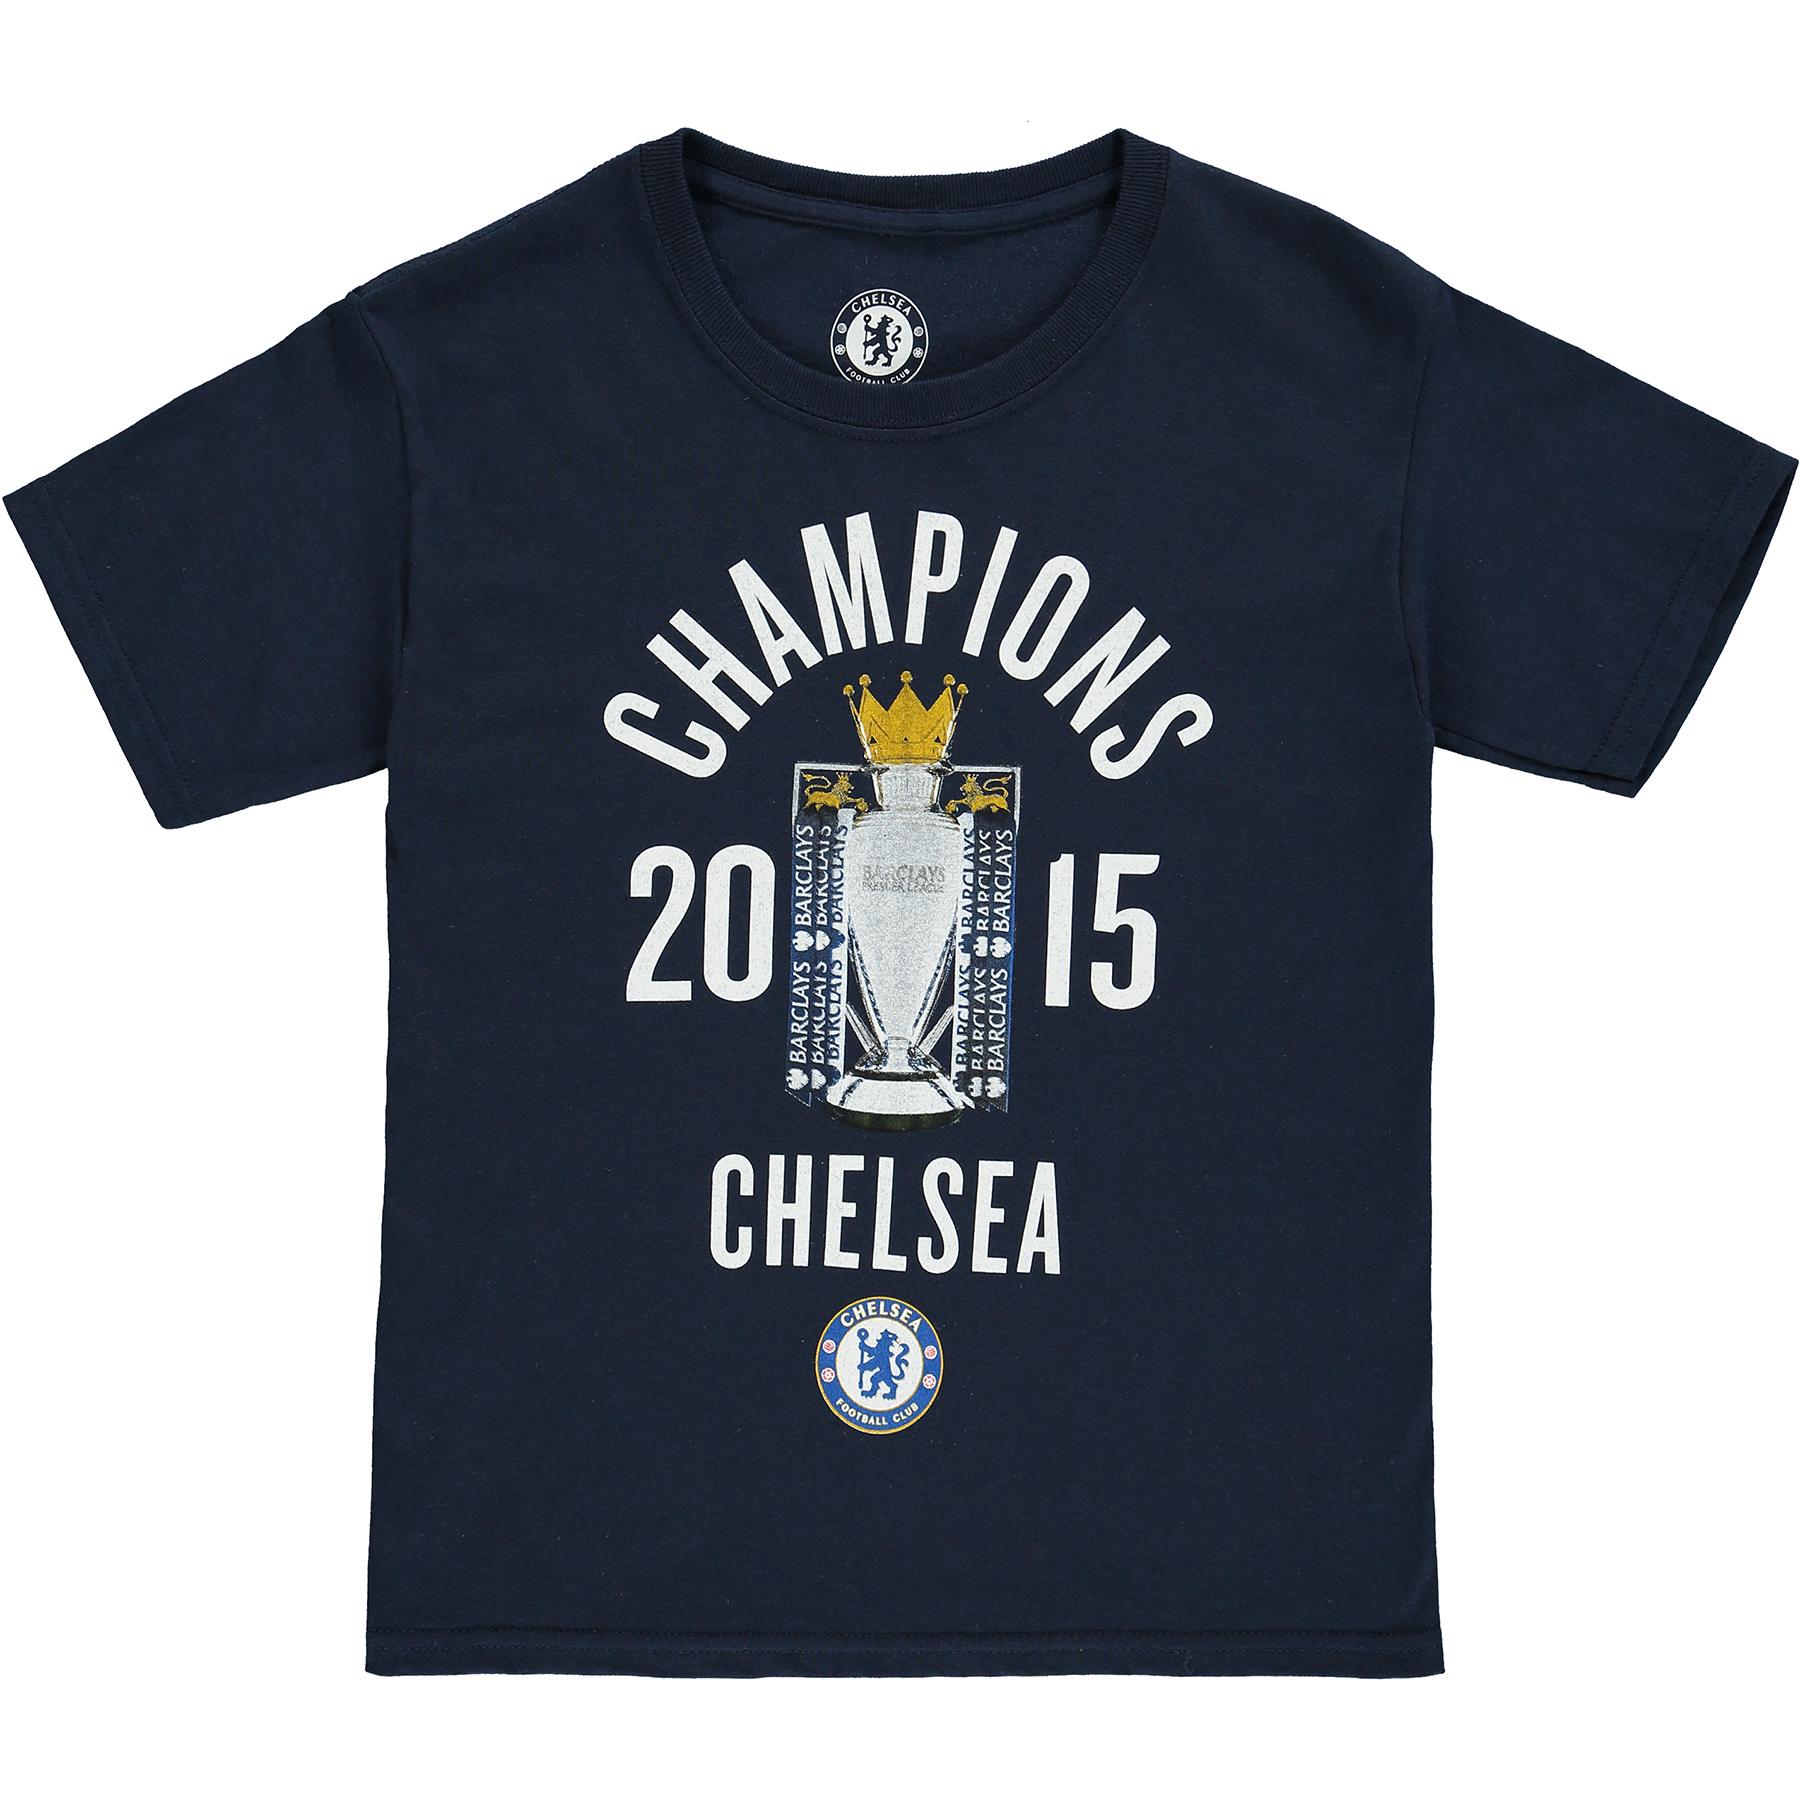 Chelsea 2014/15 Barclays Premier League Champions T-Shirt - Navy - Boys   Flat print featuring - club crest, Champions 2015 and The Official Barclays Premier League Trophy. 100% Cotton. Machine washable.